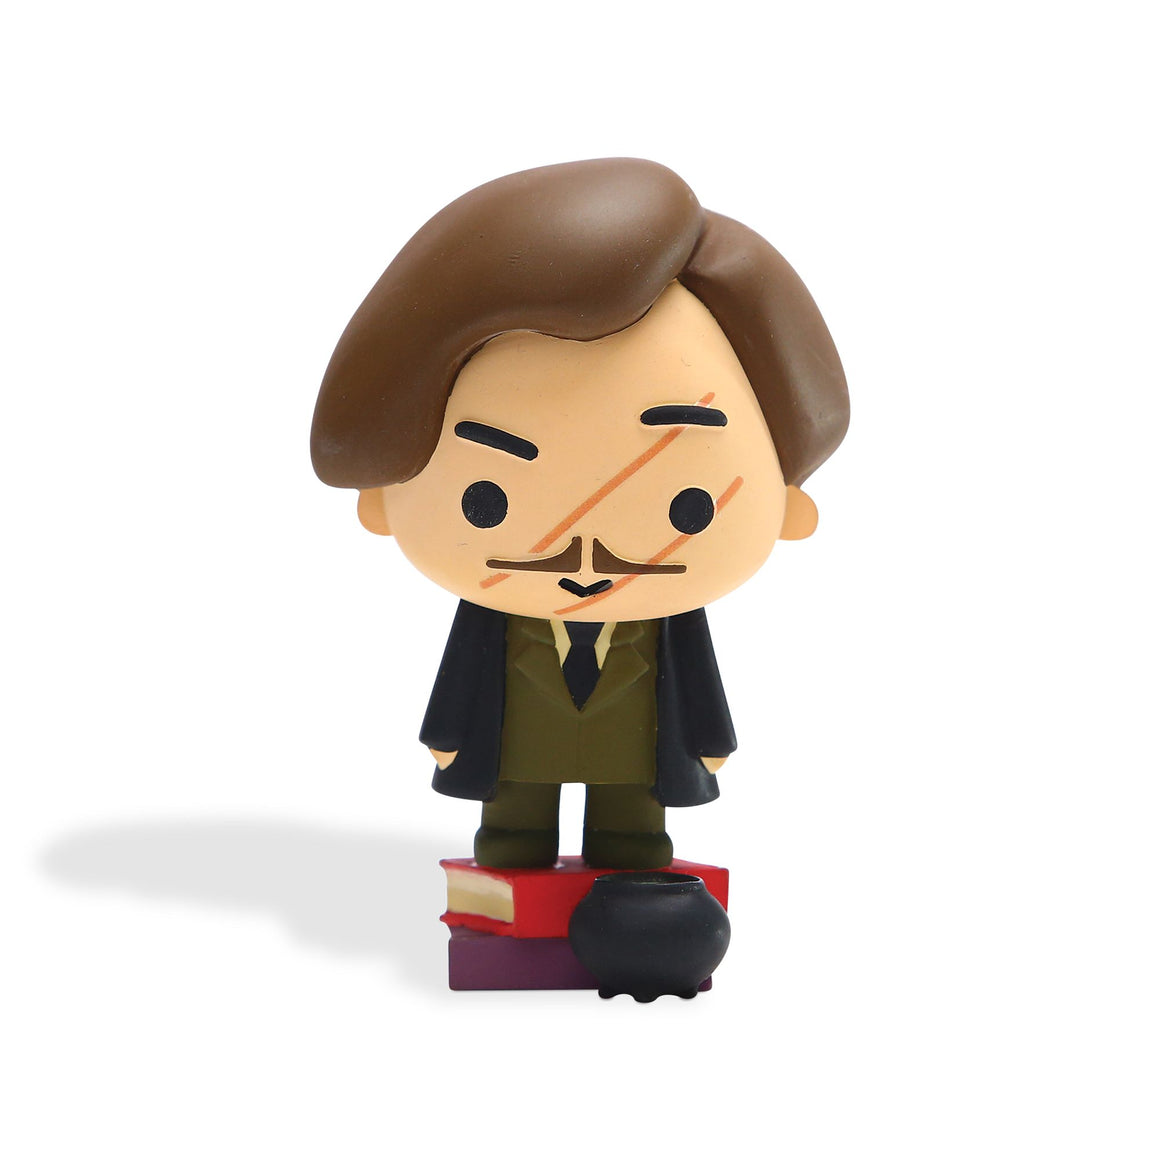 Lupin Charm Figurine - The Wizarding World of Harry Potter